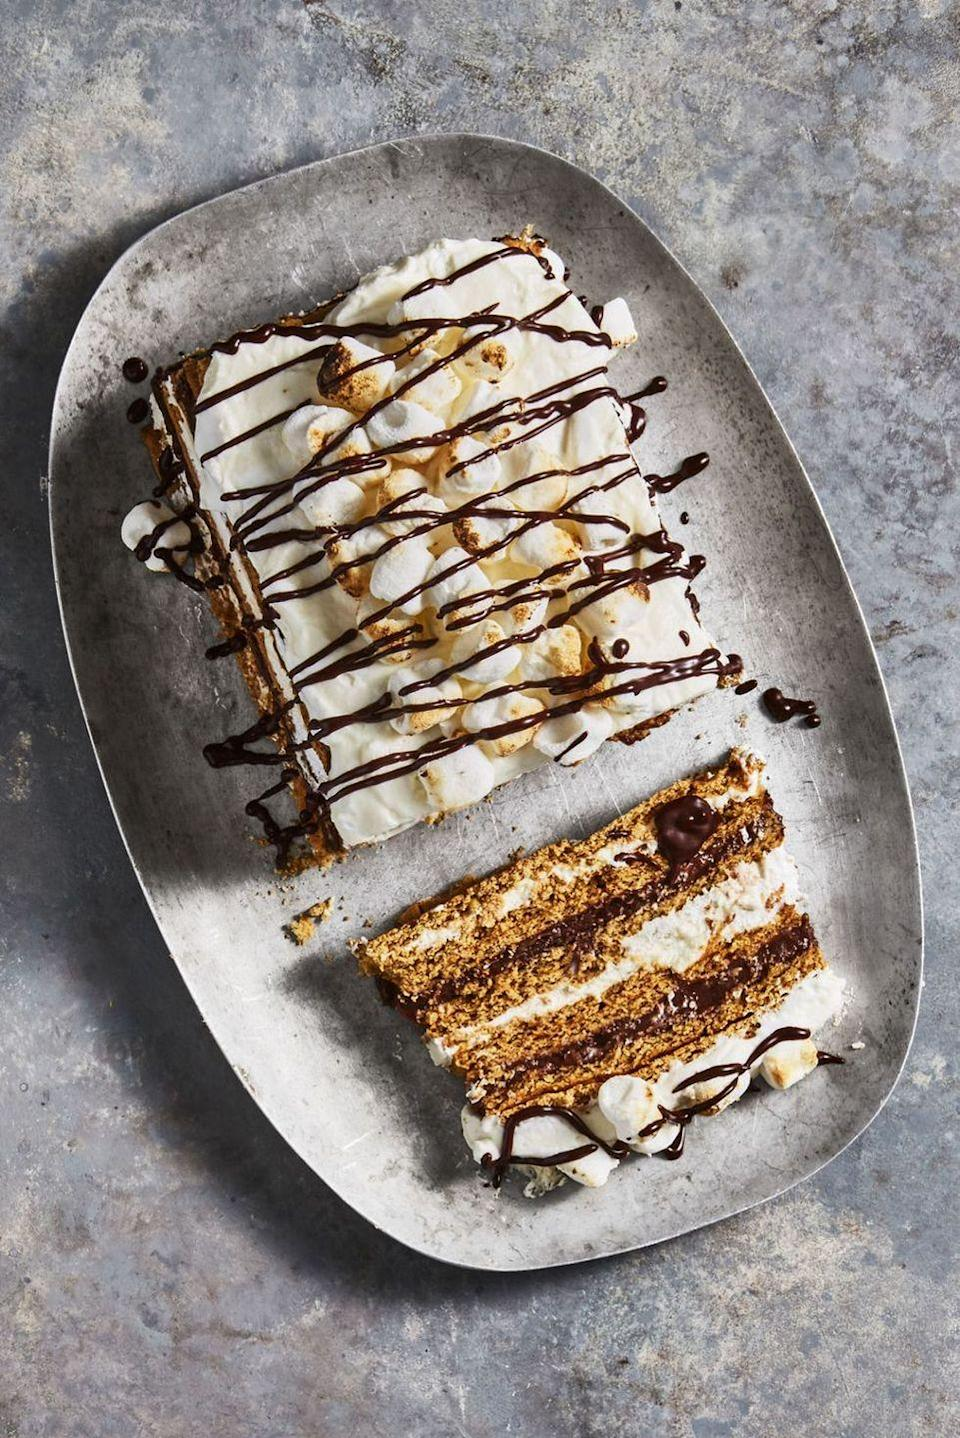 """<p>Assembling this showstopper takes less than half an hour. Make it the night before and refrigerate to allow the flavors to meld. </p><p><em><a href=""""https://www.goodhousekeeping.com/food-recipes/dessert/a45720/smores-icebox-cake-recipe/"""" rel=""""nofollow noopener"""" target=""""_blank"""" data-ylk=""""slk:Get the recipe for S'mores Icebox Cake »"""" class=""""link rapid-noclick-resp"""">Get the recipe for S'mores Icebox Cake »</a></em></p>"""